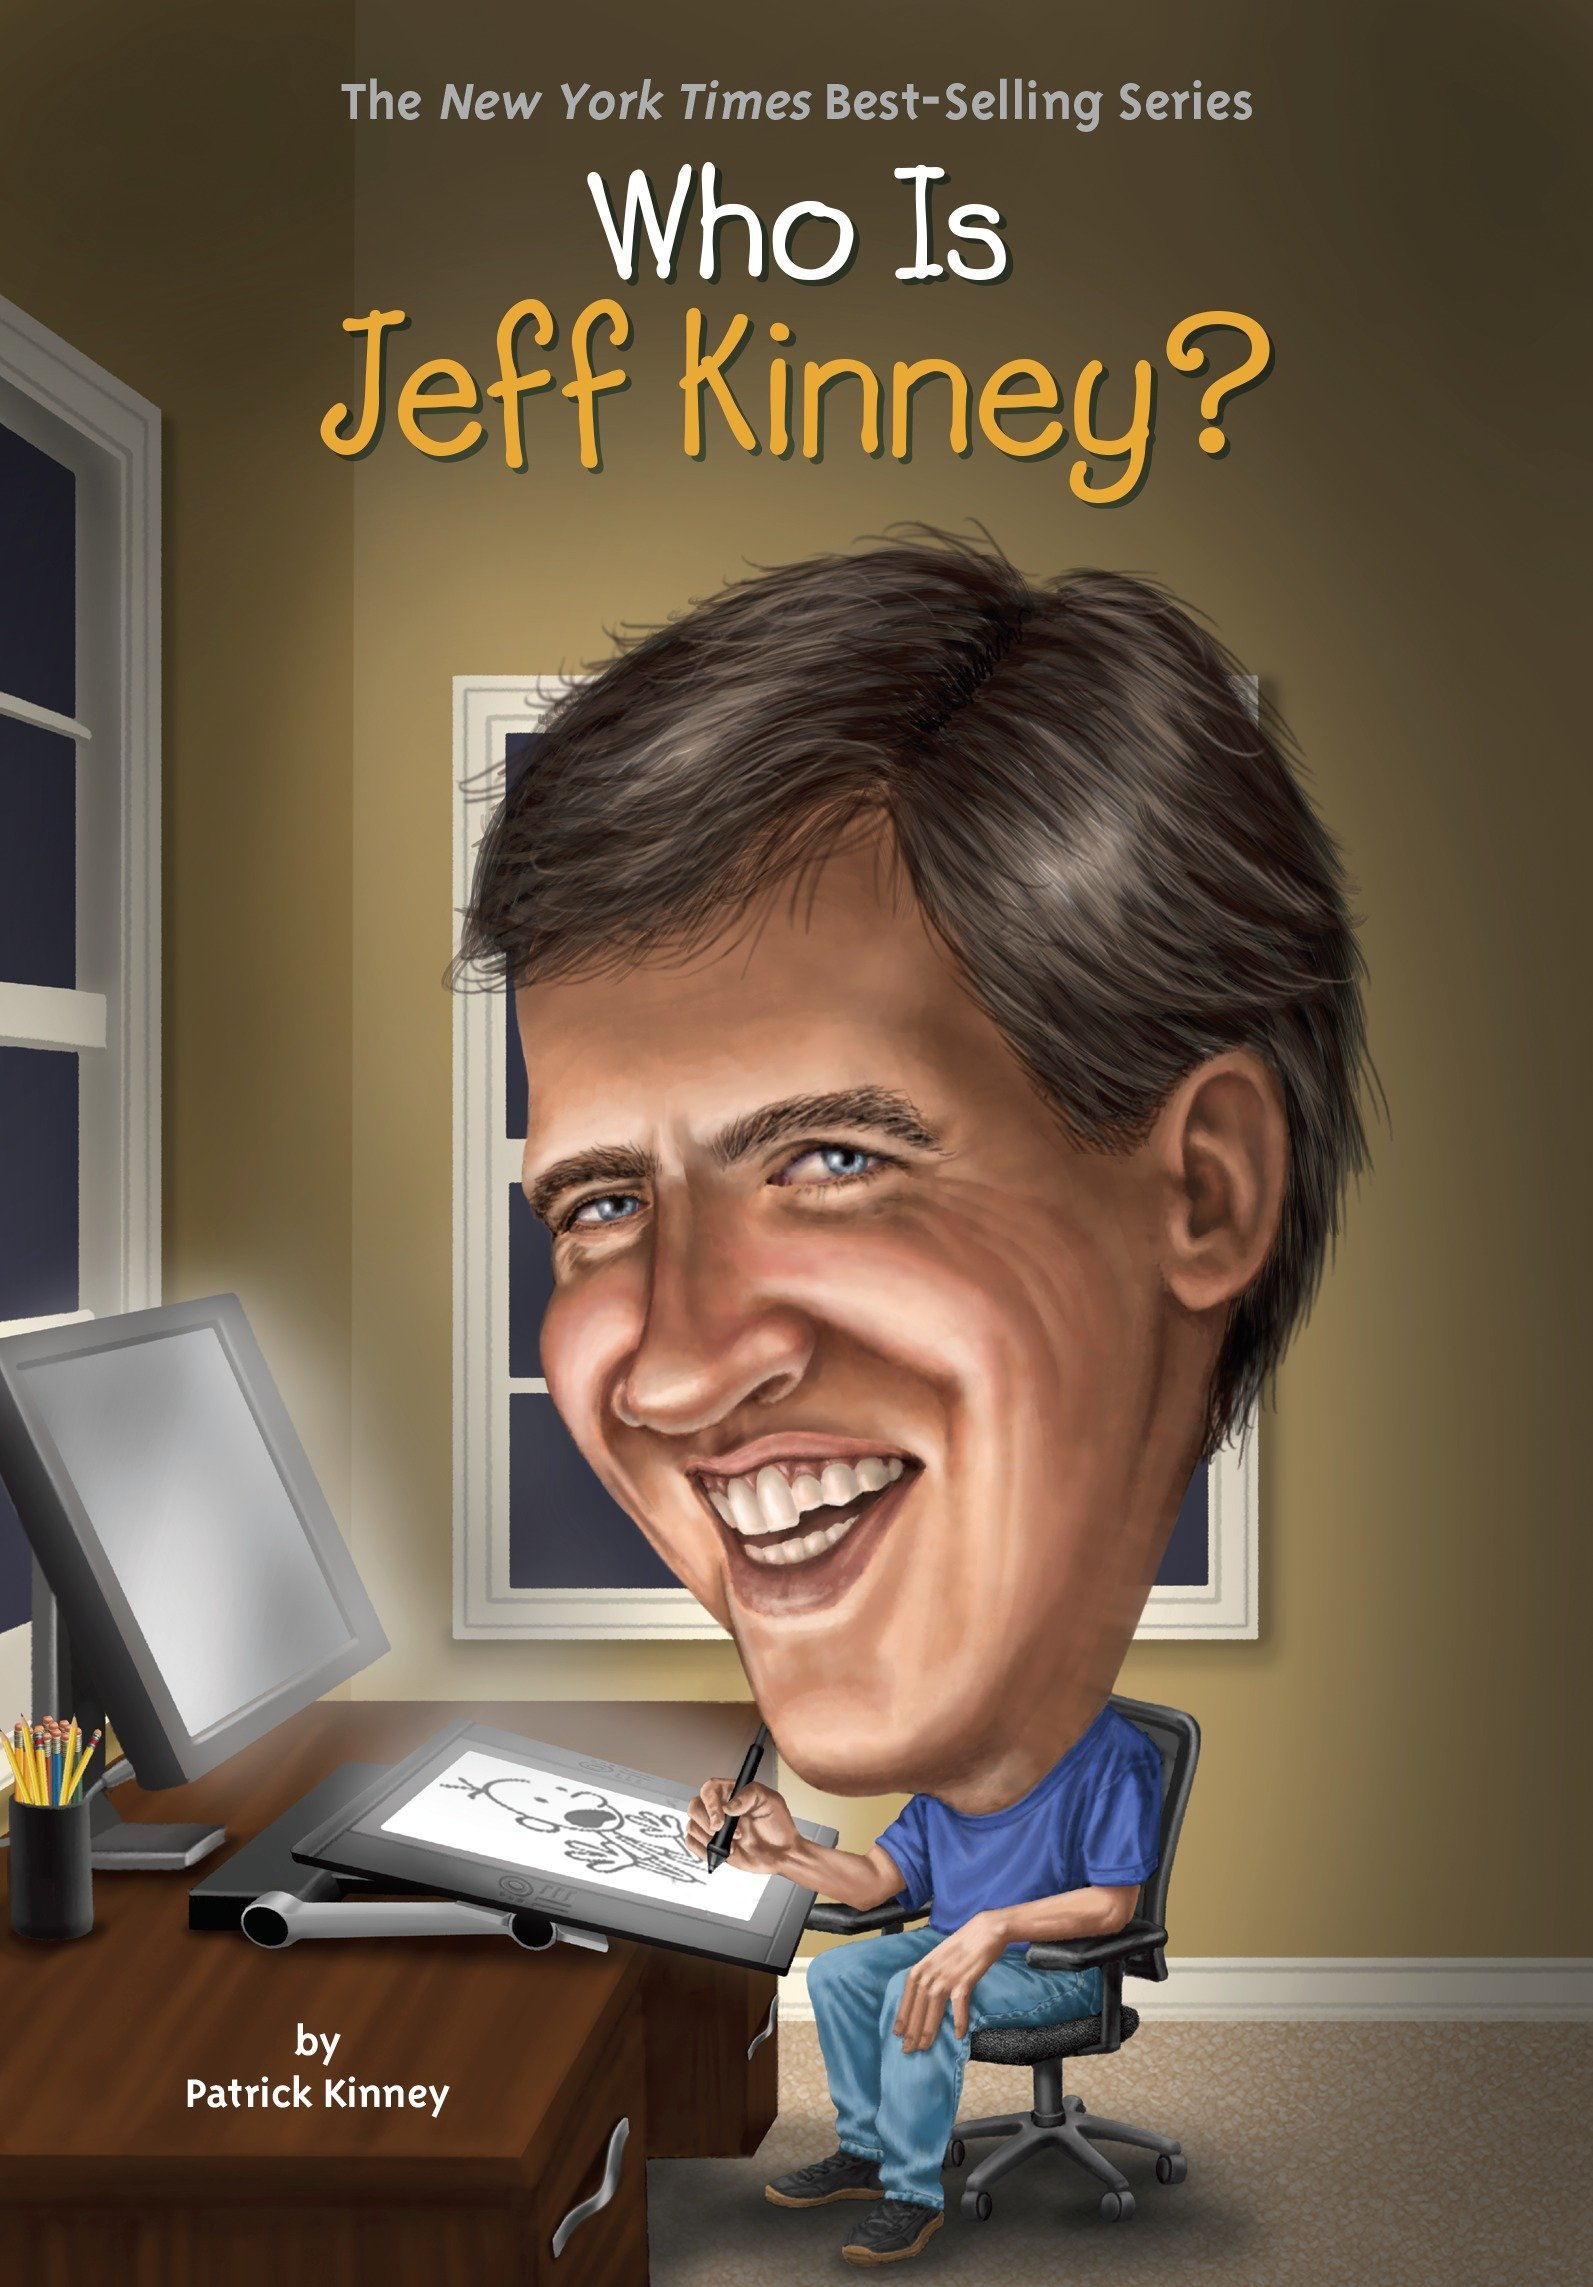 jeff kinney place of birth